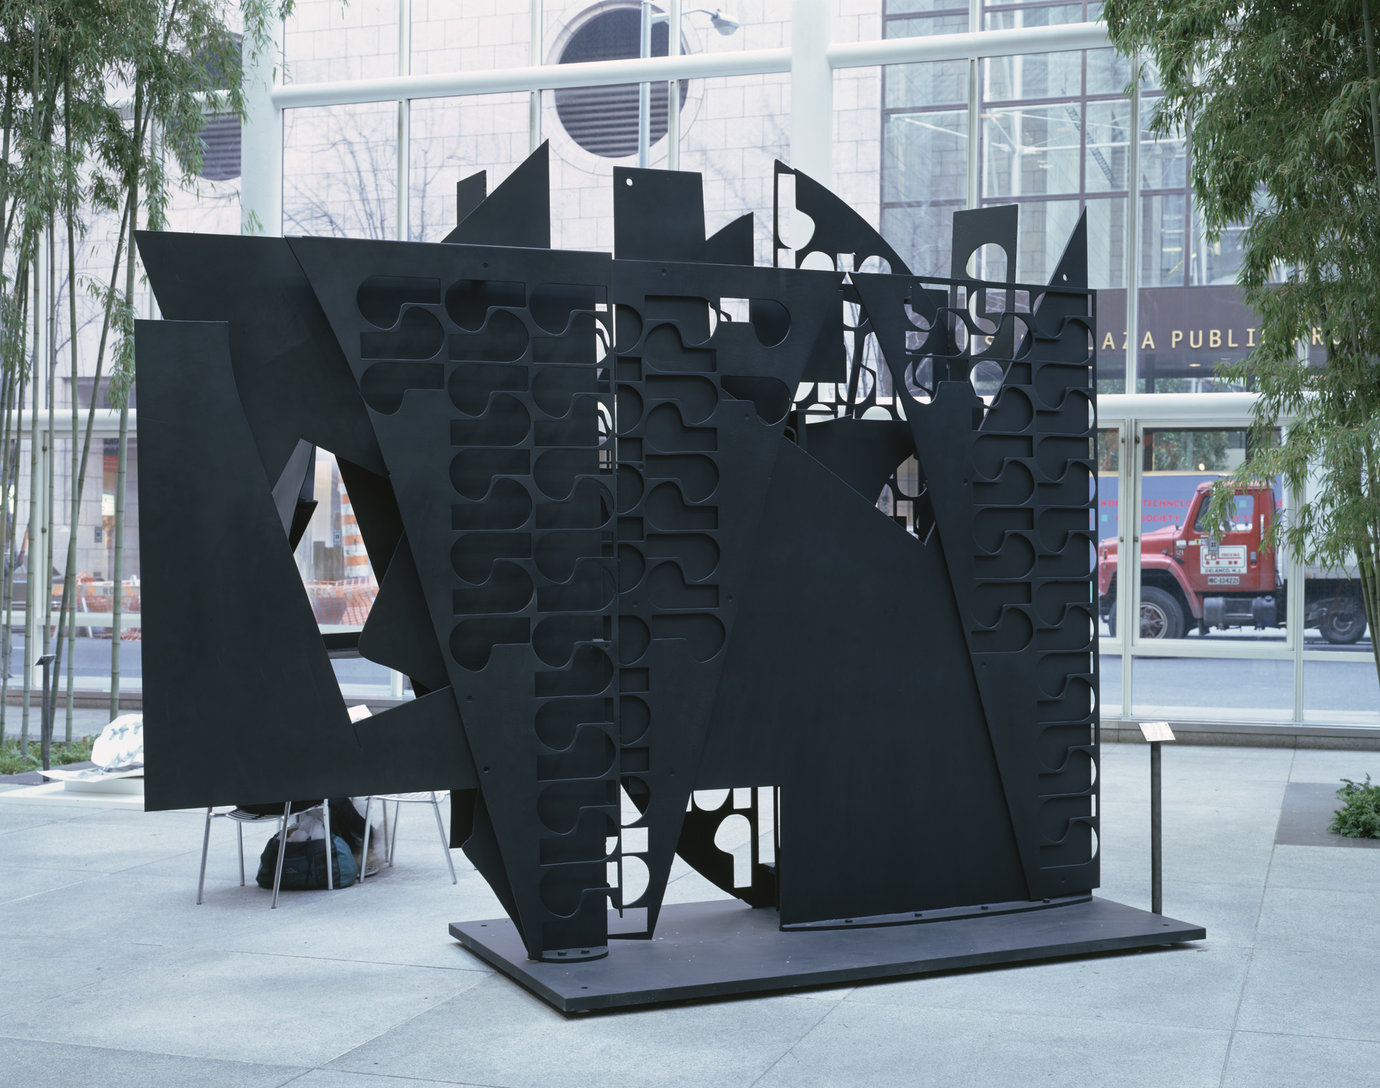 ", 1976-80. Cor-ten steel painted black, 11' 6"" x 14' 4"" x 5' (3.505 m x 4.369 m x 1.524 m)."